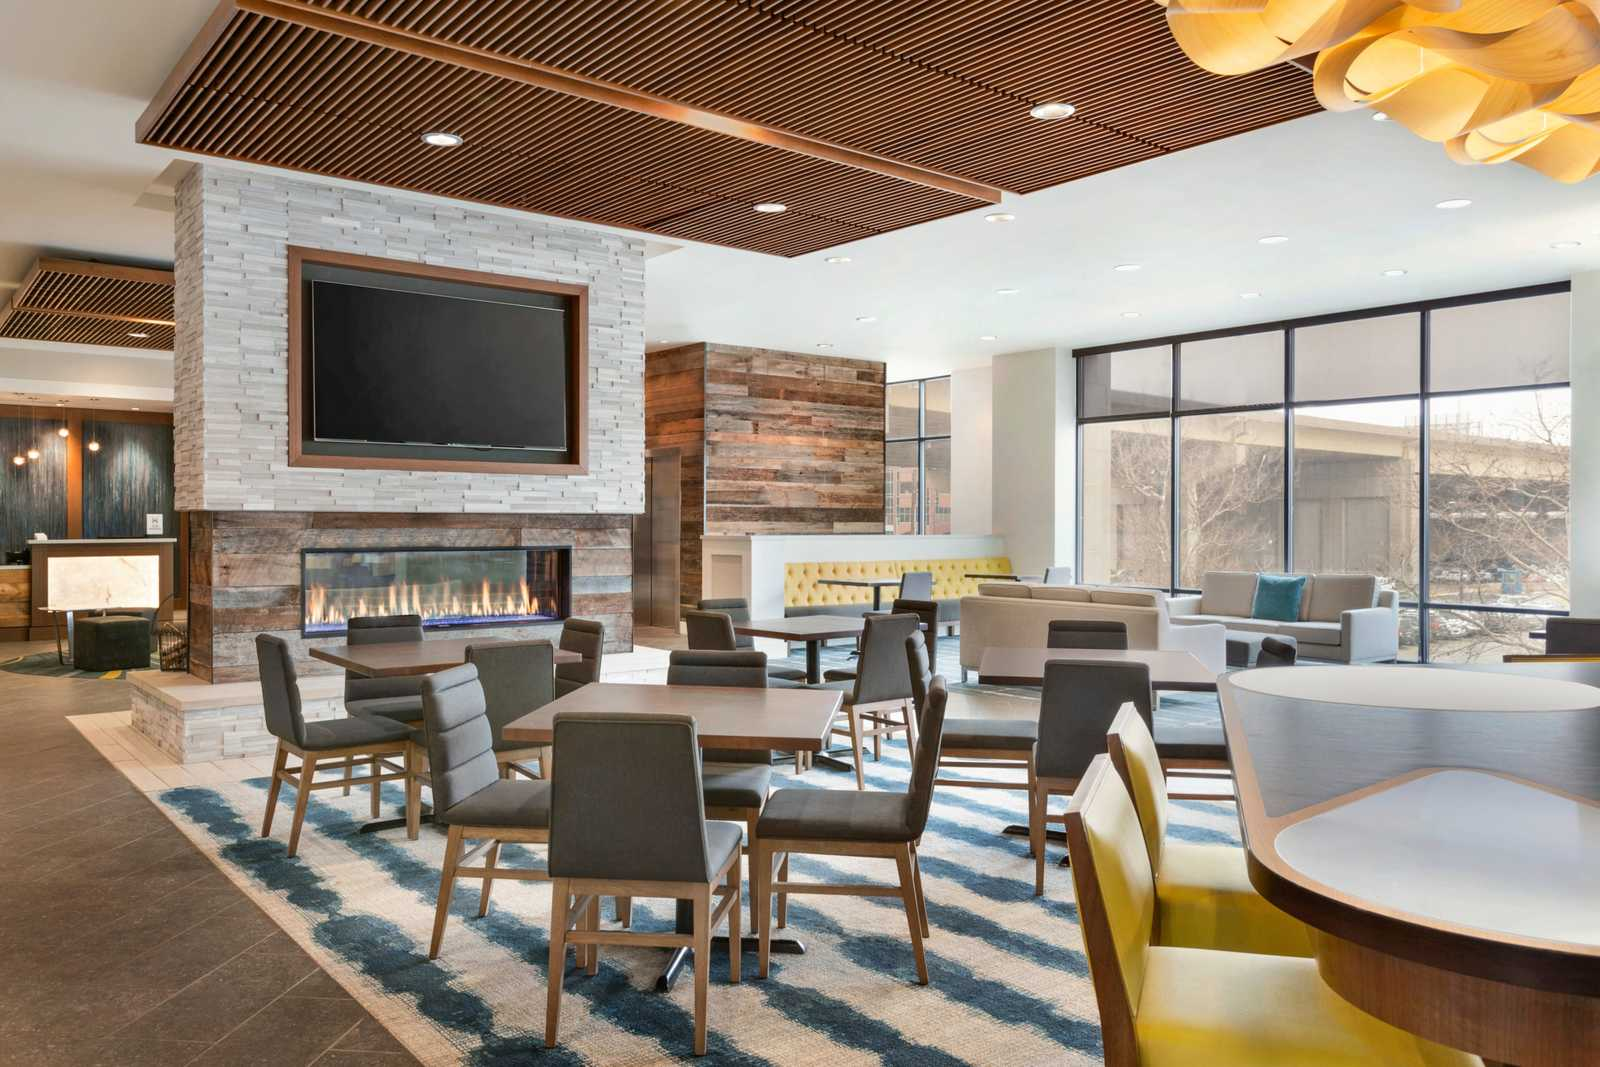 Hotel, Pennsylvania: Homewood Suites By Hilton Pittsburgh Downtown ...